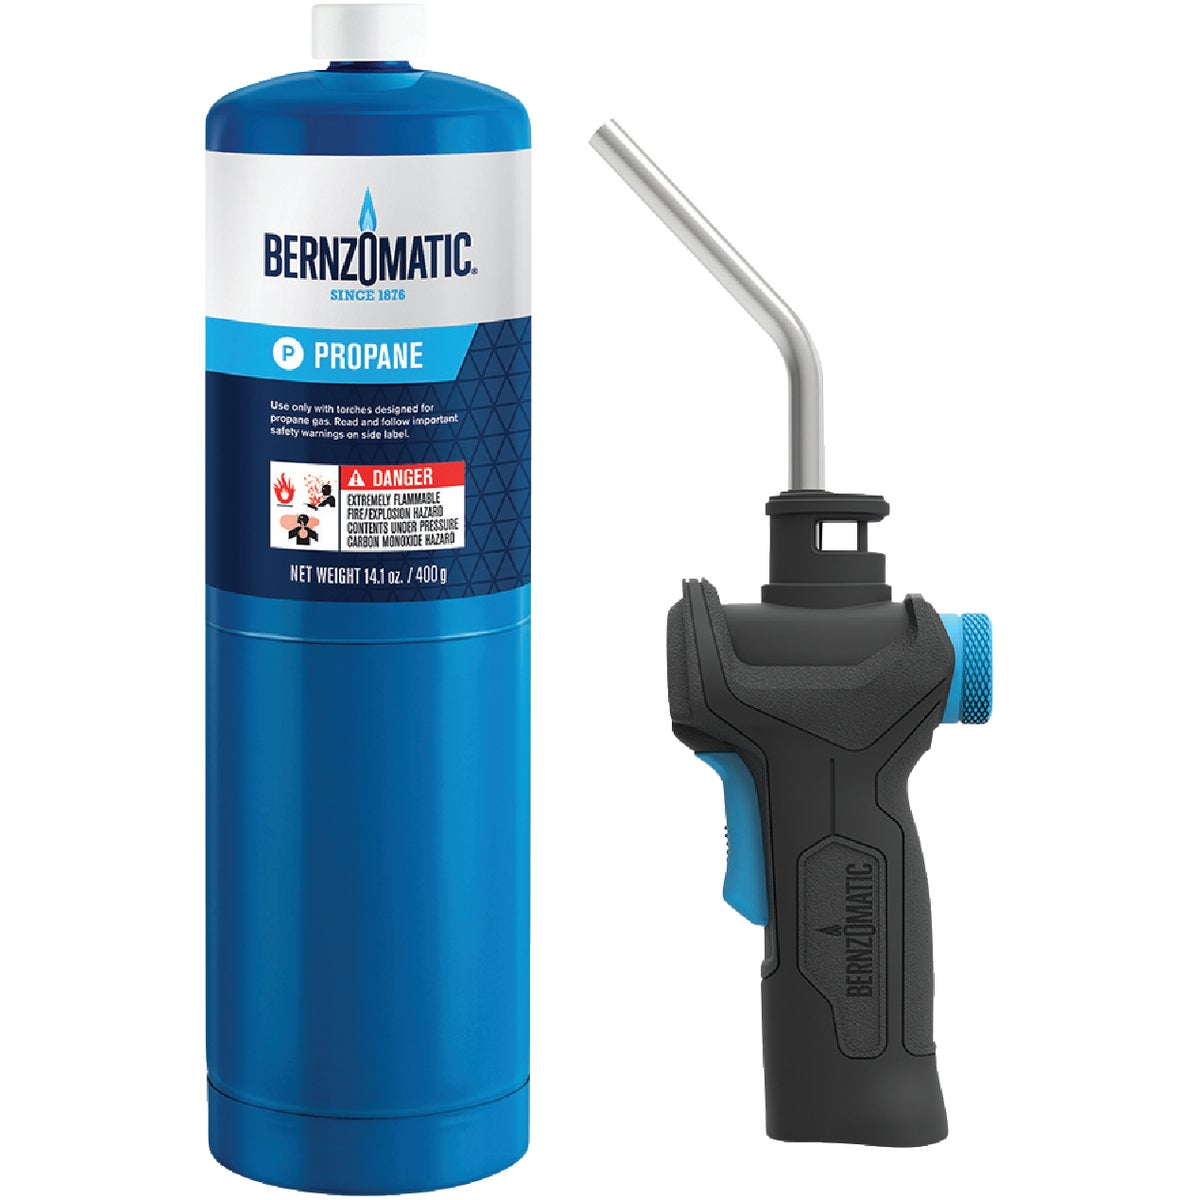 PROPANE TORCH KIT - 330887 by Bernzomatic